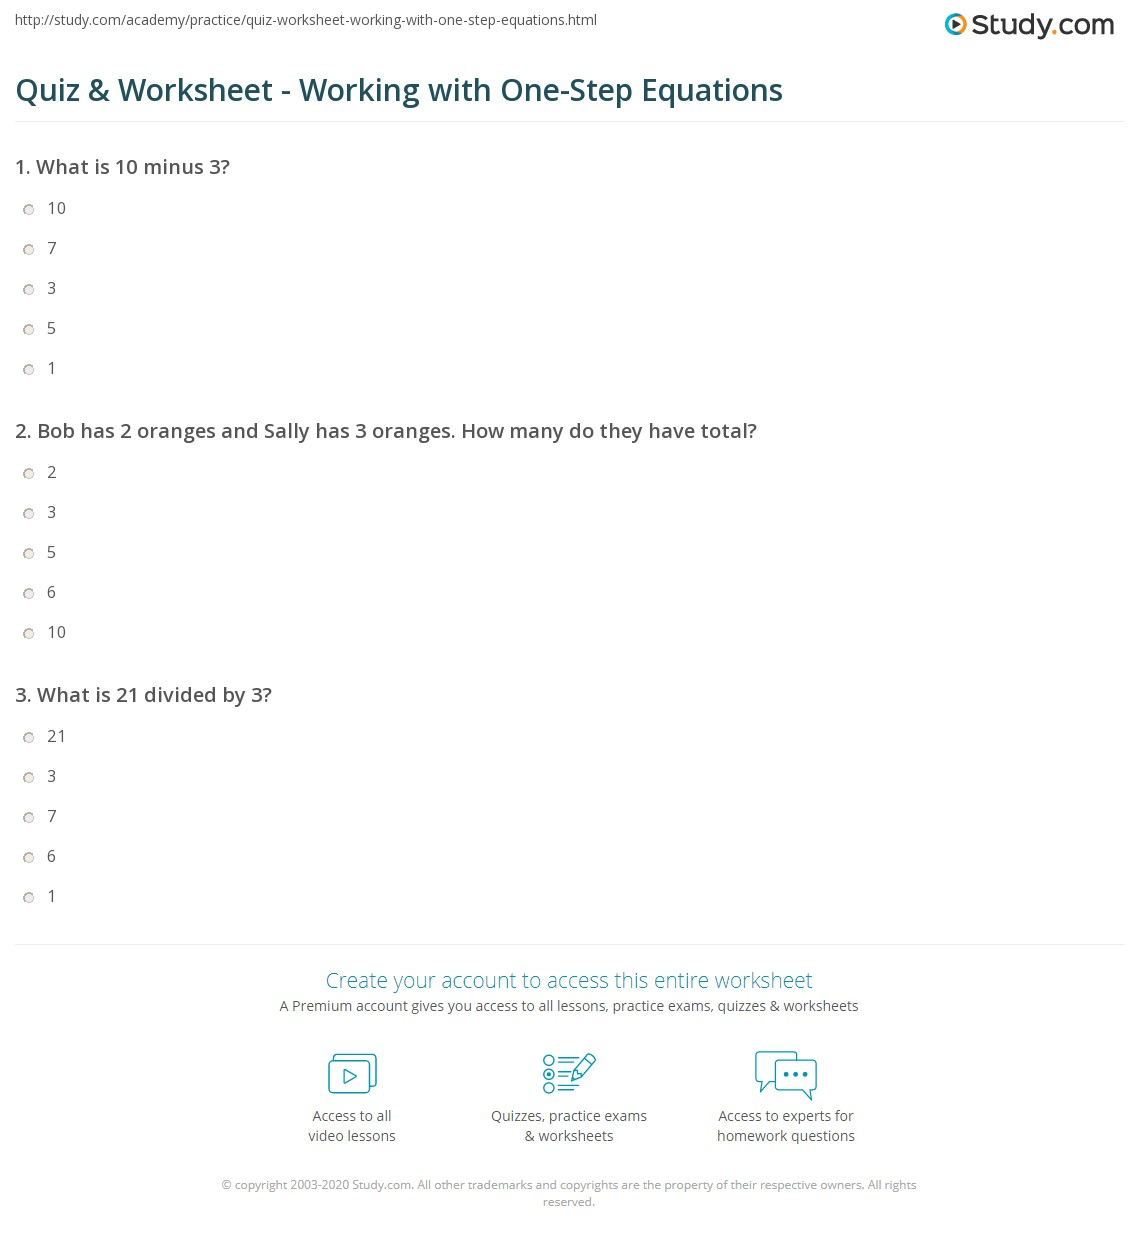 worksheet Single Step Equations Worksheet quiz worksheet working with one step equations study com print defining translating solving worksheet